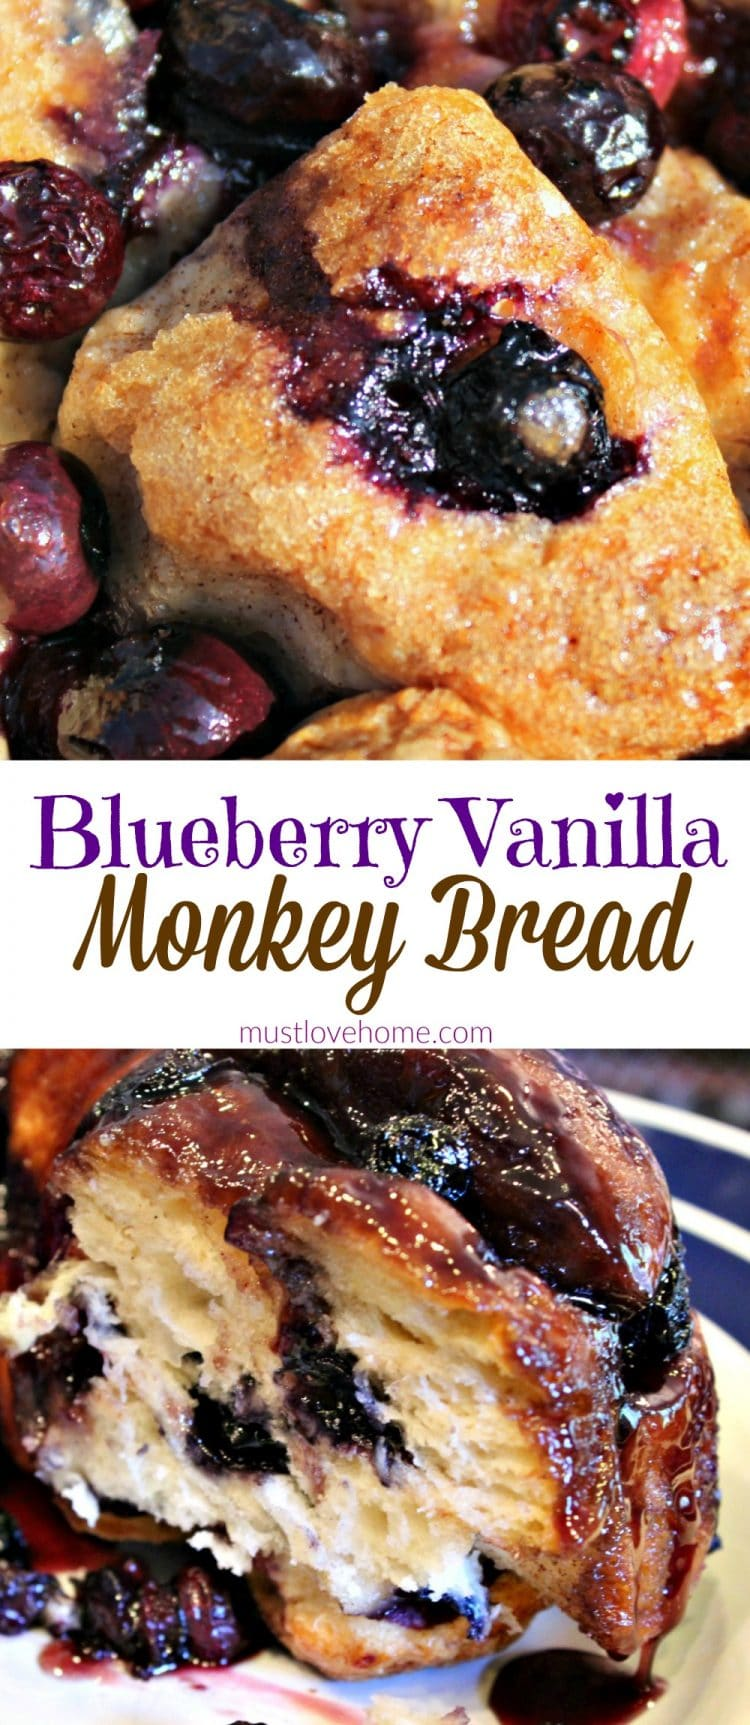 Blueberry Vanilla Monkey Bread is a delicious pull apart bundt loaf chock full of blueberries, smothered and baked in a syrup made from cinnamon, butter and vanilla. It is an amazing brunch dish that will also be a hit at any potluck or party!